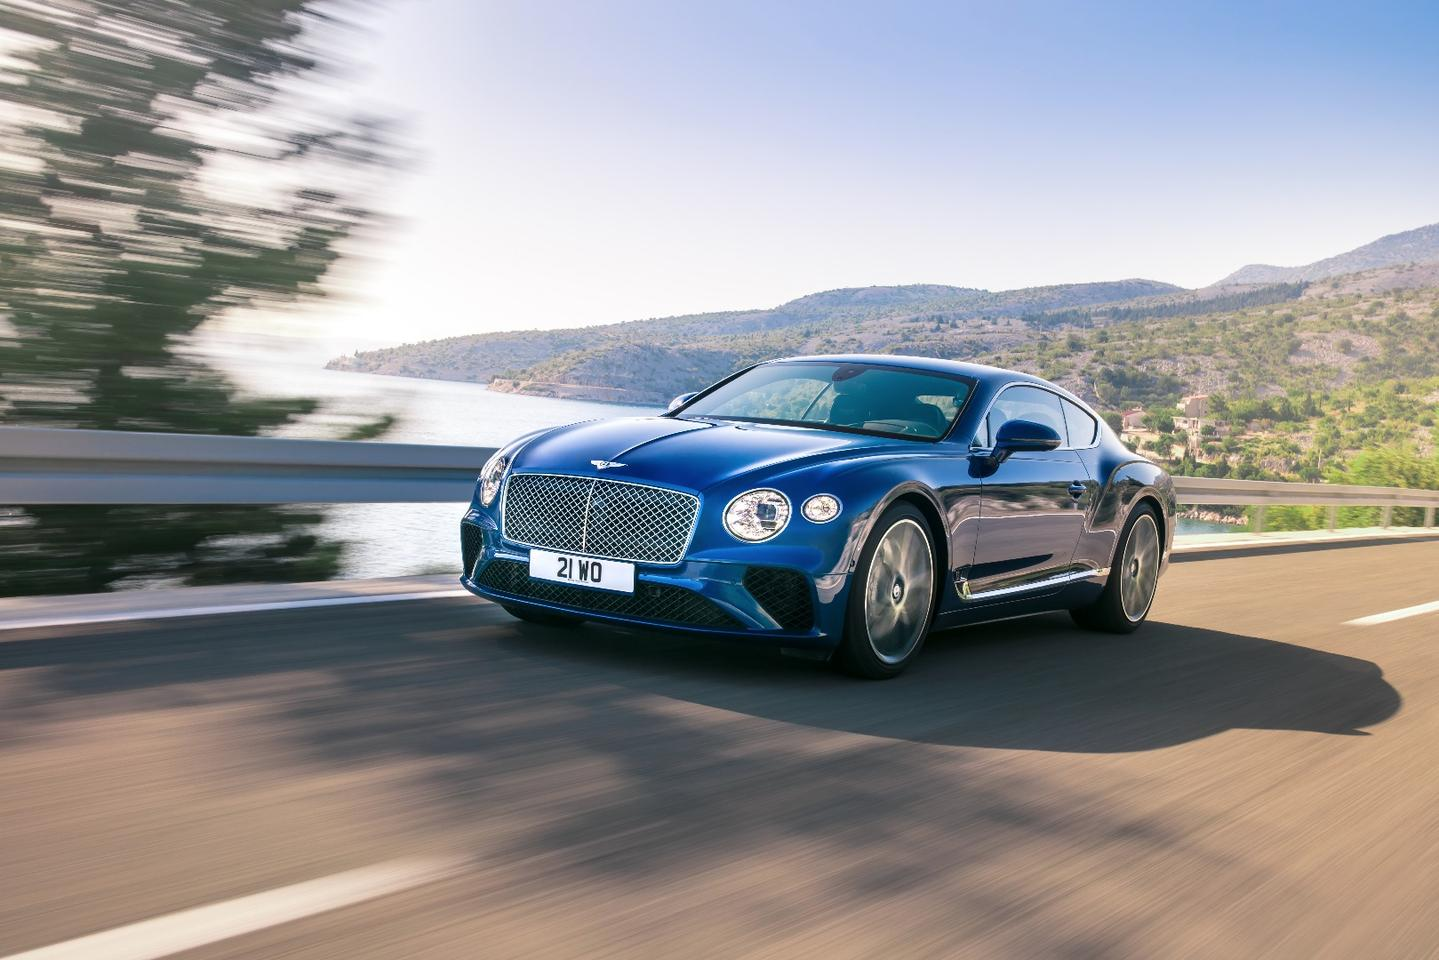 The new Bentley Continental GT is powered by a W12